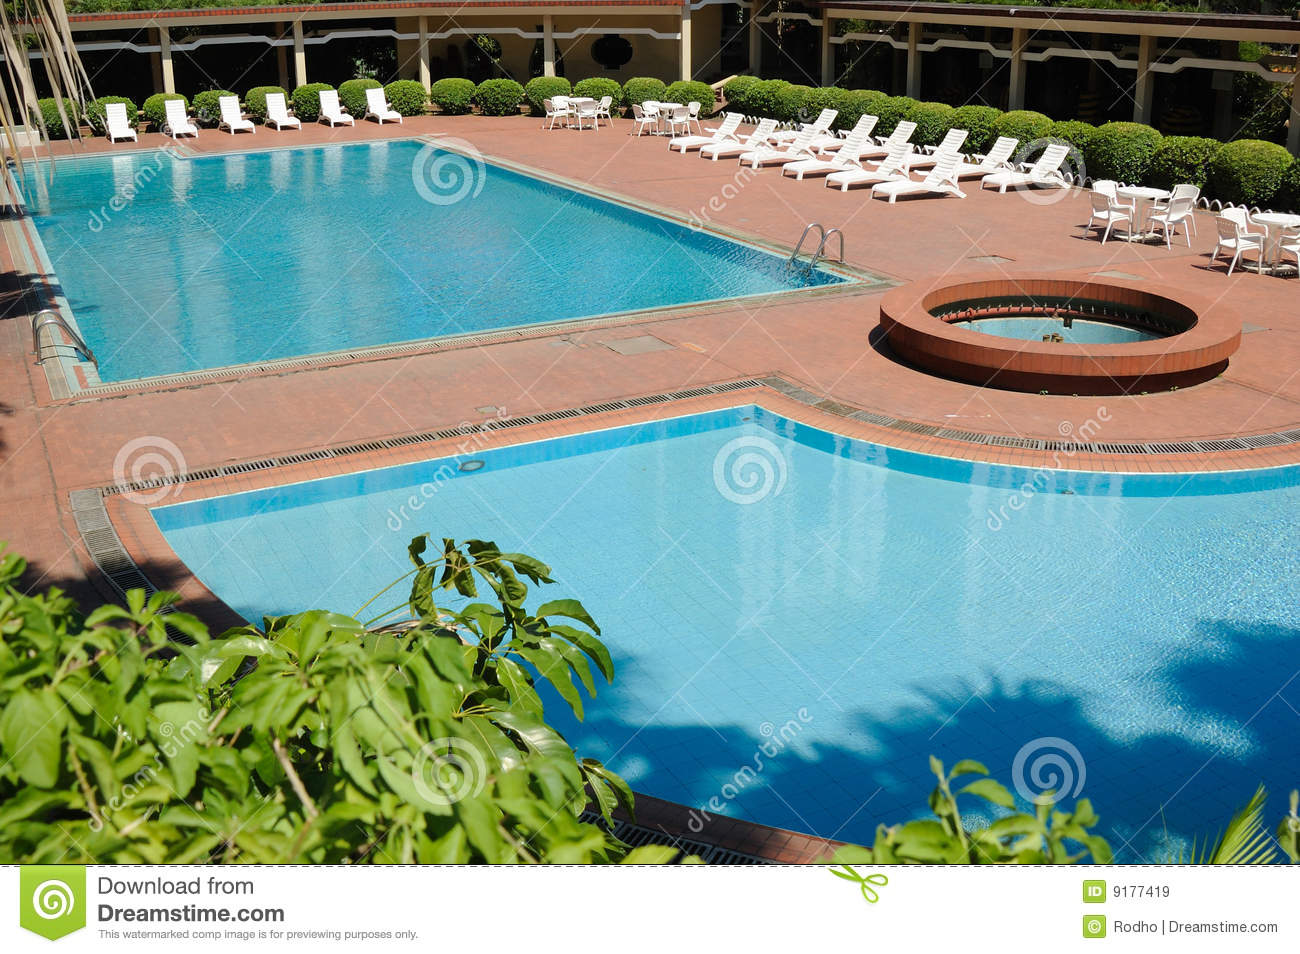 Swimming Pool And Deck Chairs Stock Image - Image of spring, design ...